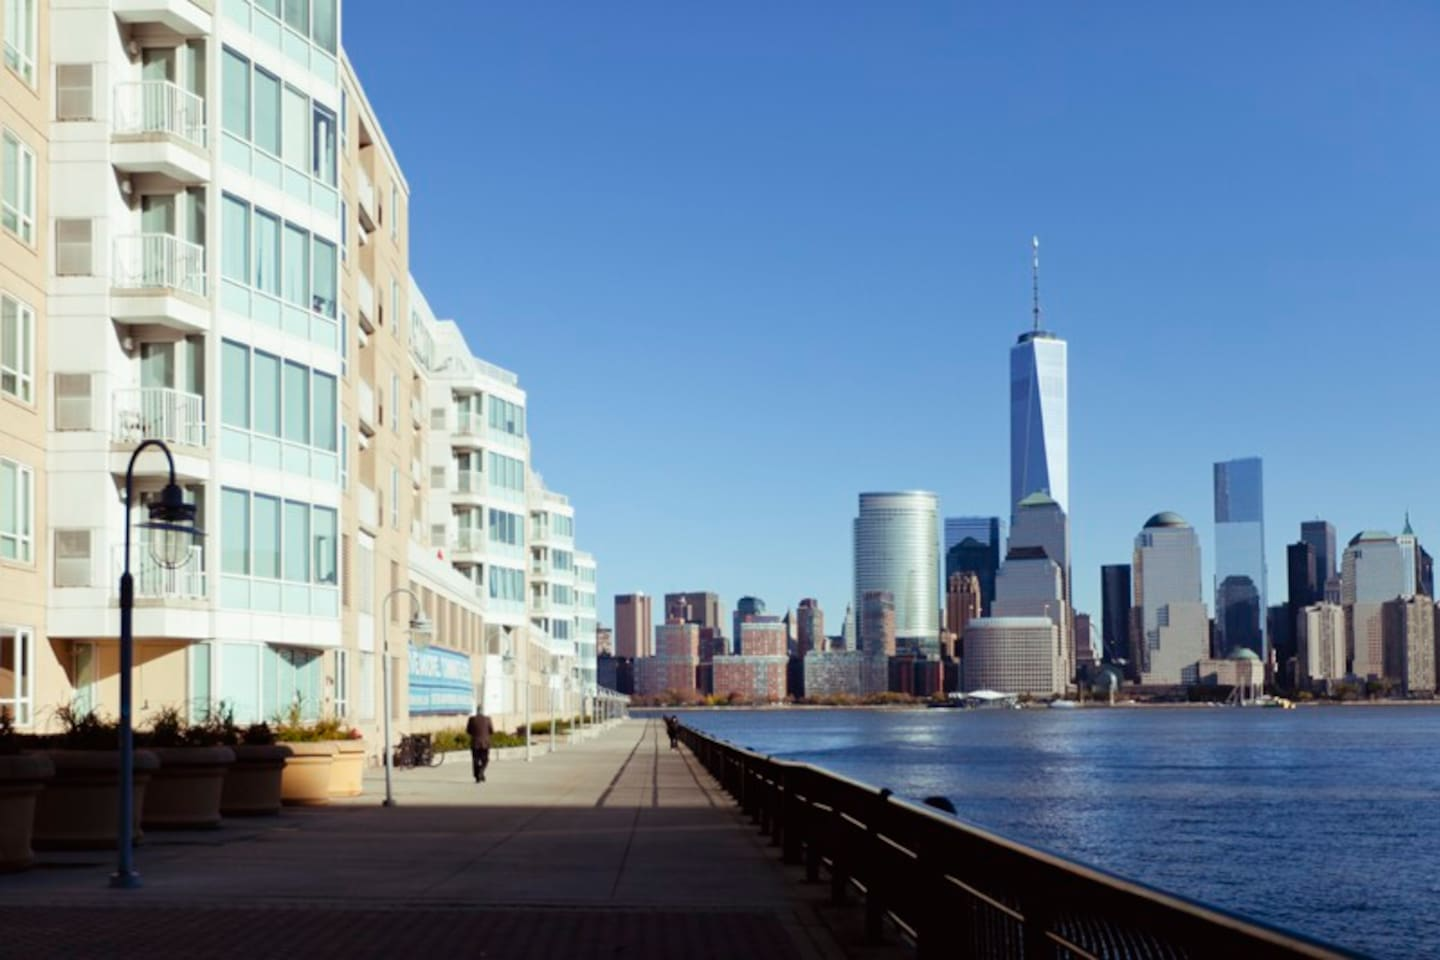 Building Exterior and Riverfront Promenade with Views of New York City